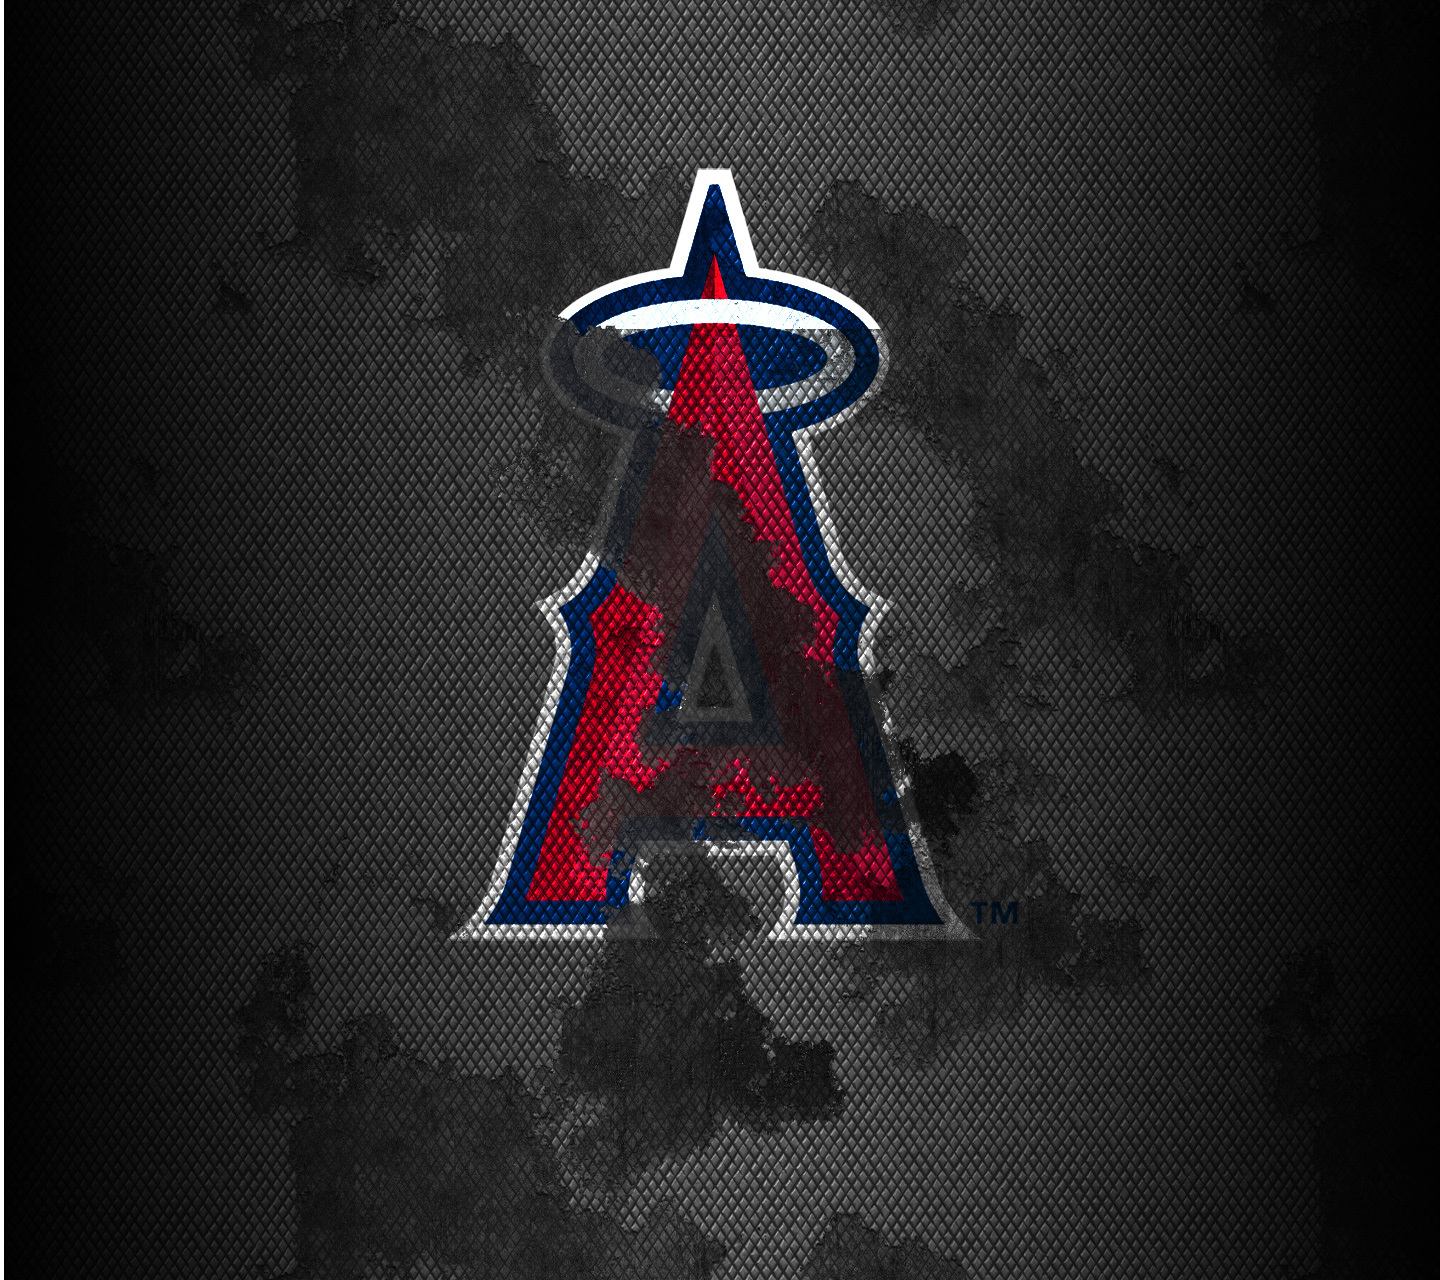 Angeles Angels of Anaheim wallpapers Los Angeles Angels of Anaheim 1440x1280